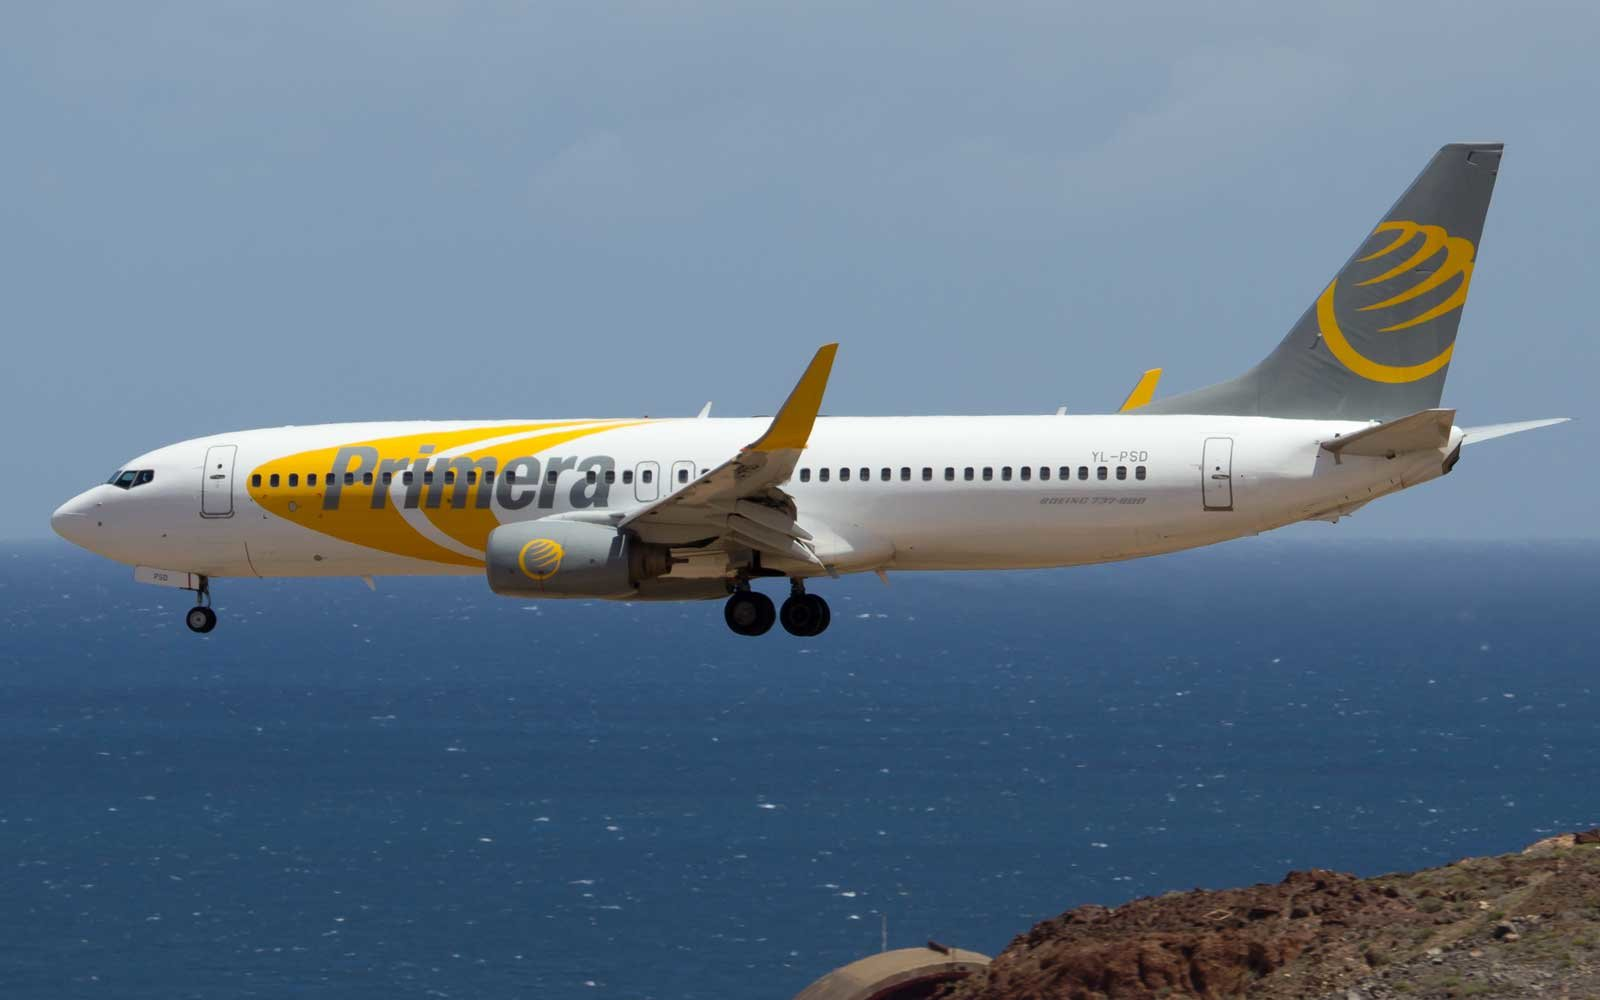 European budget airline Primera Air ceases operations